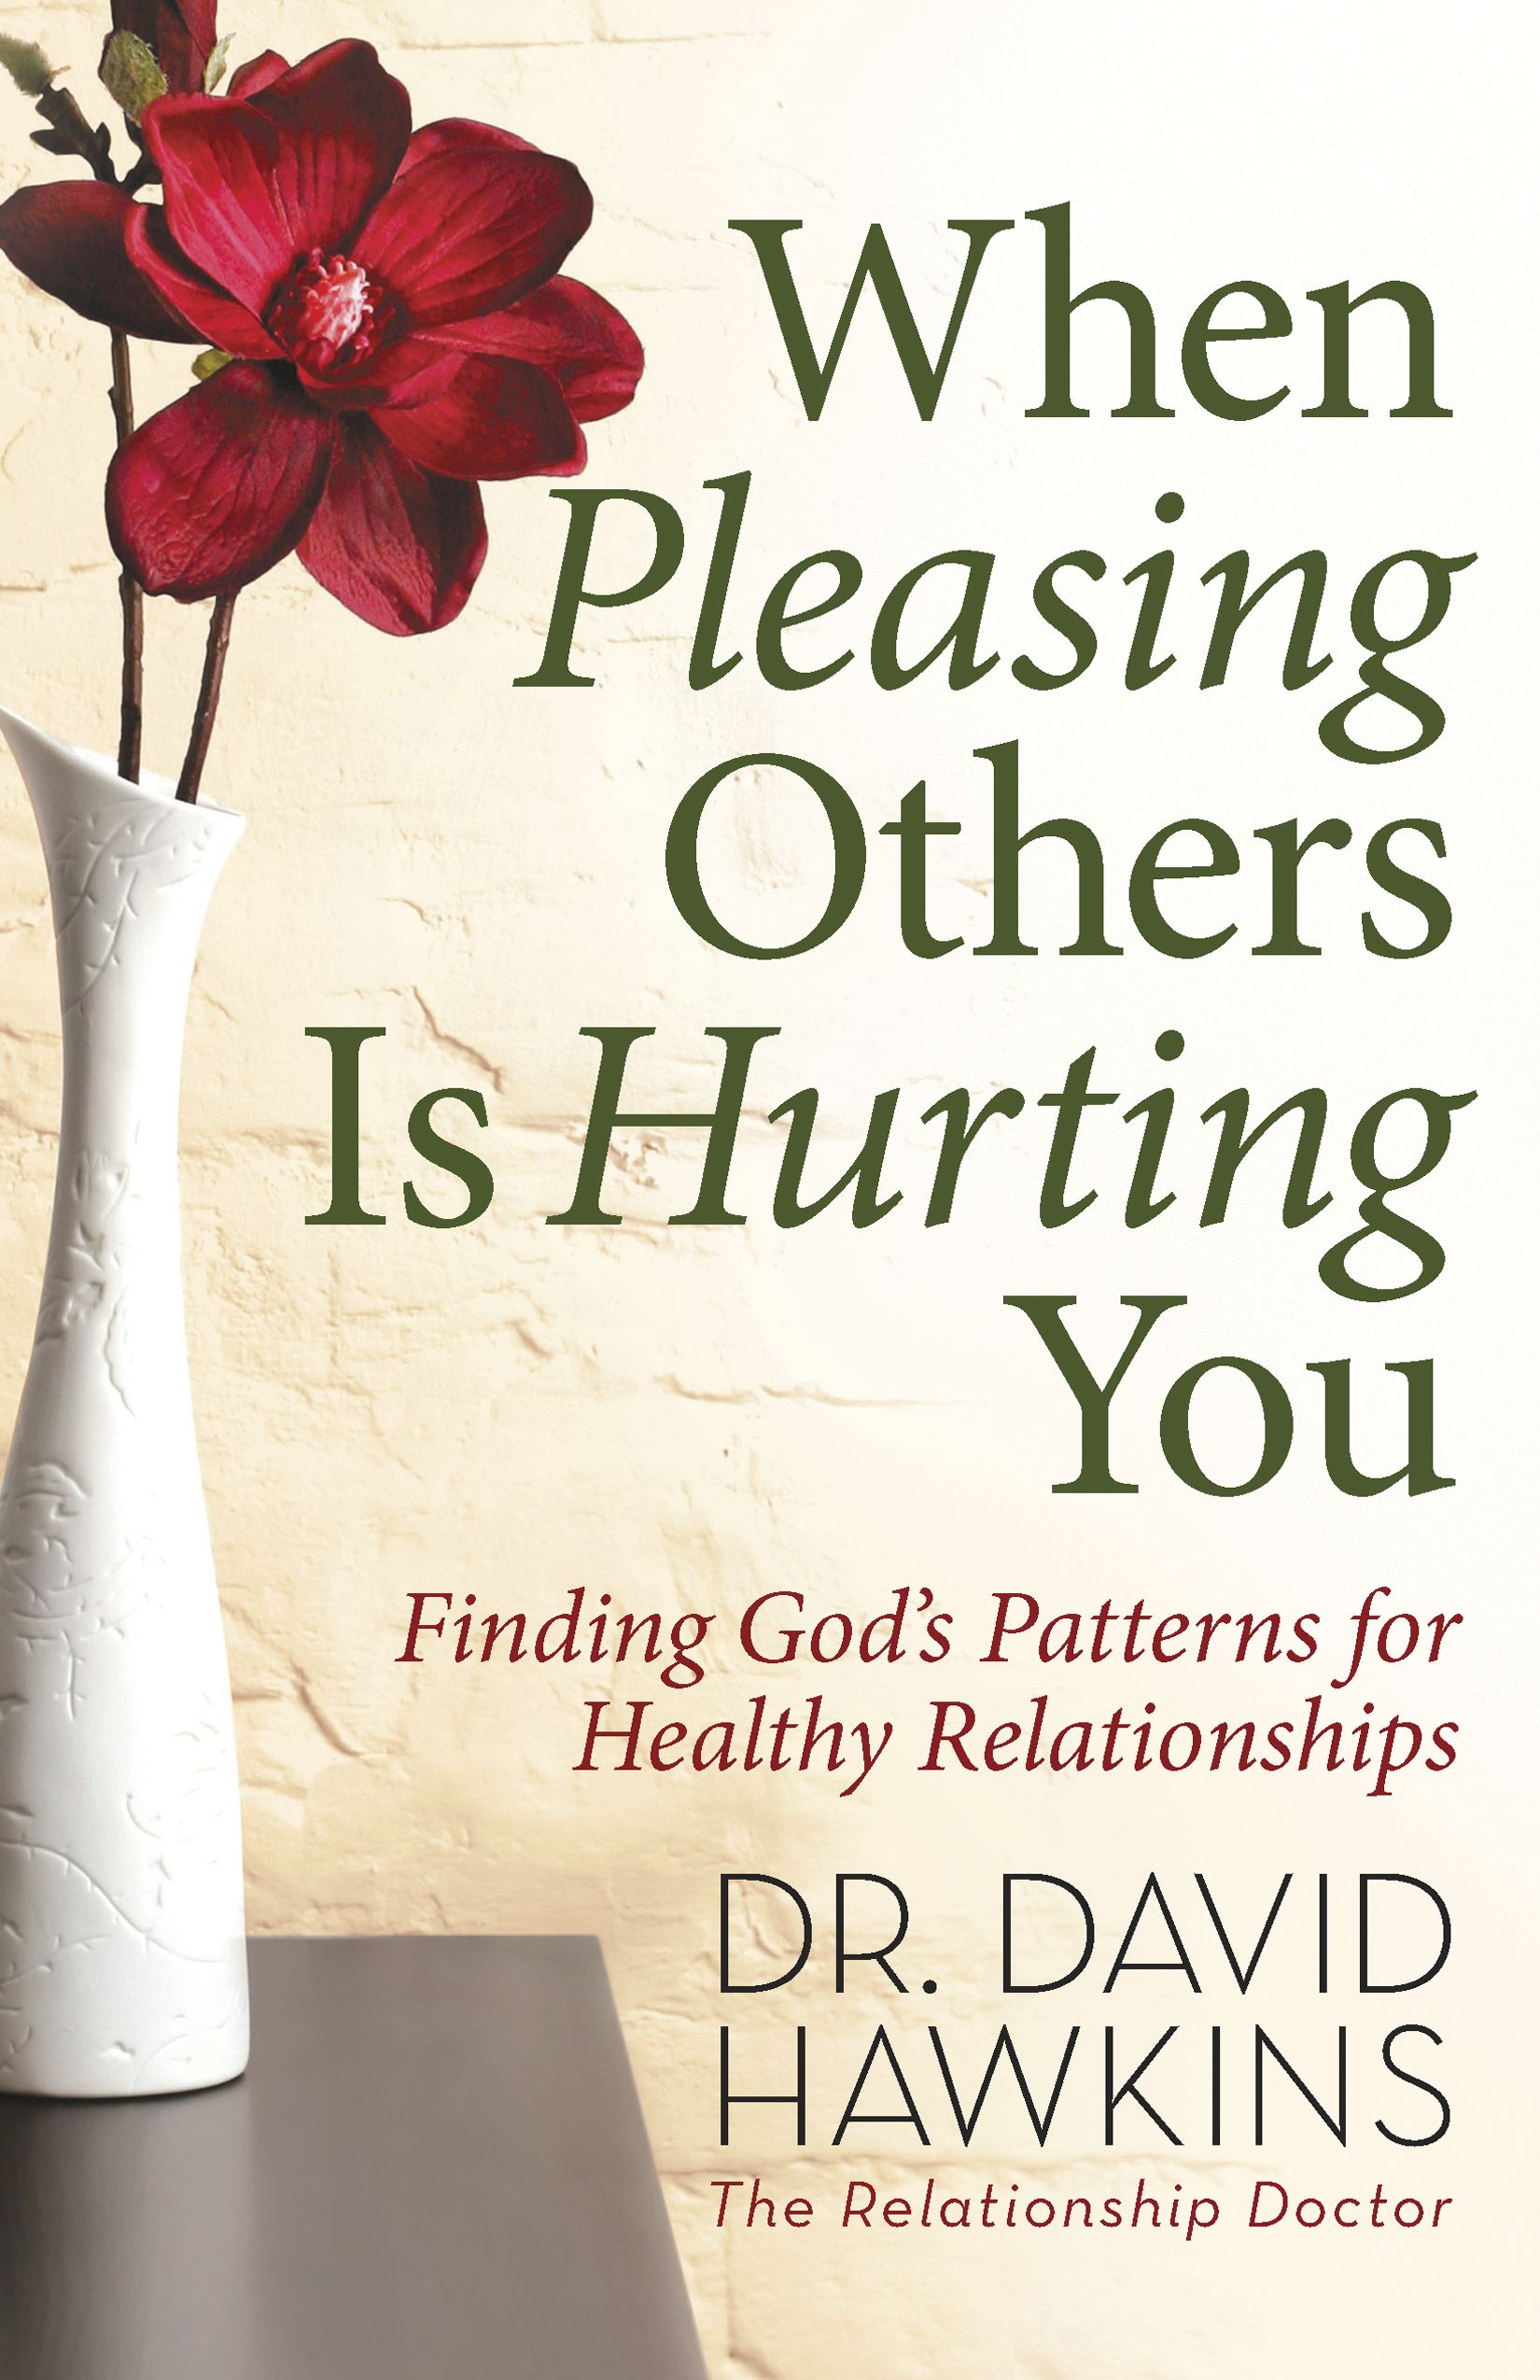 When Pleasing Others Is Hurting You By: David Hawkins